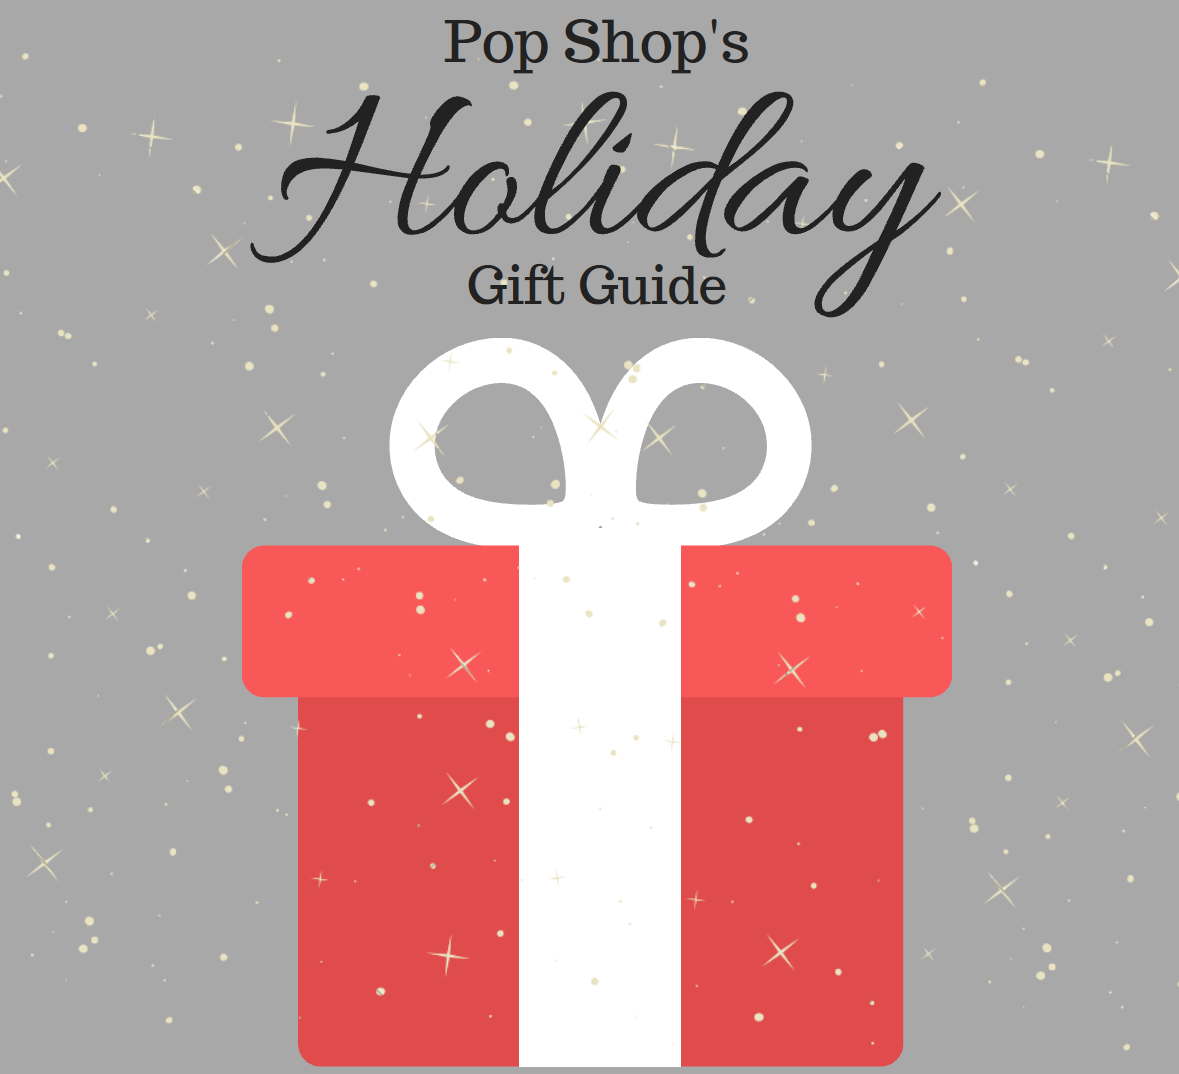 Pop Shop's 2018 Holiday Gift Guide